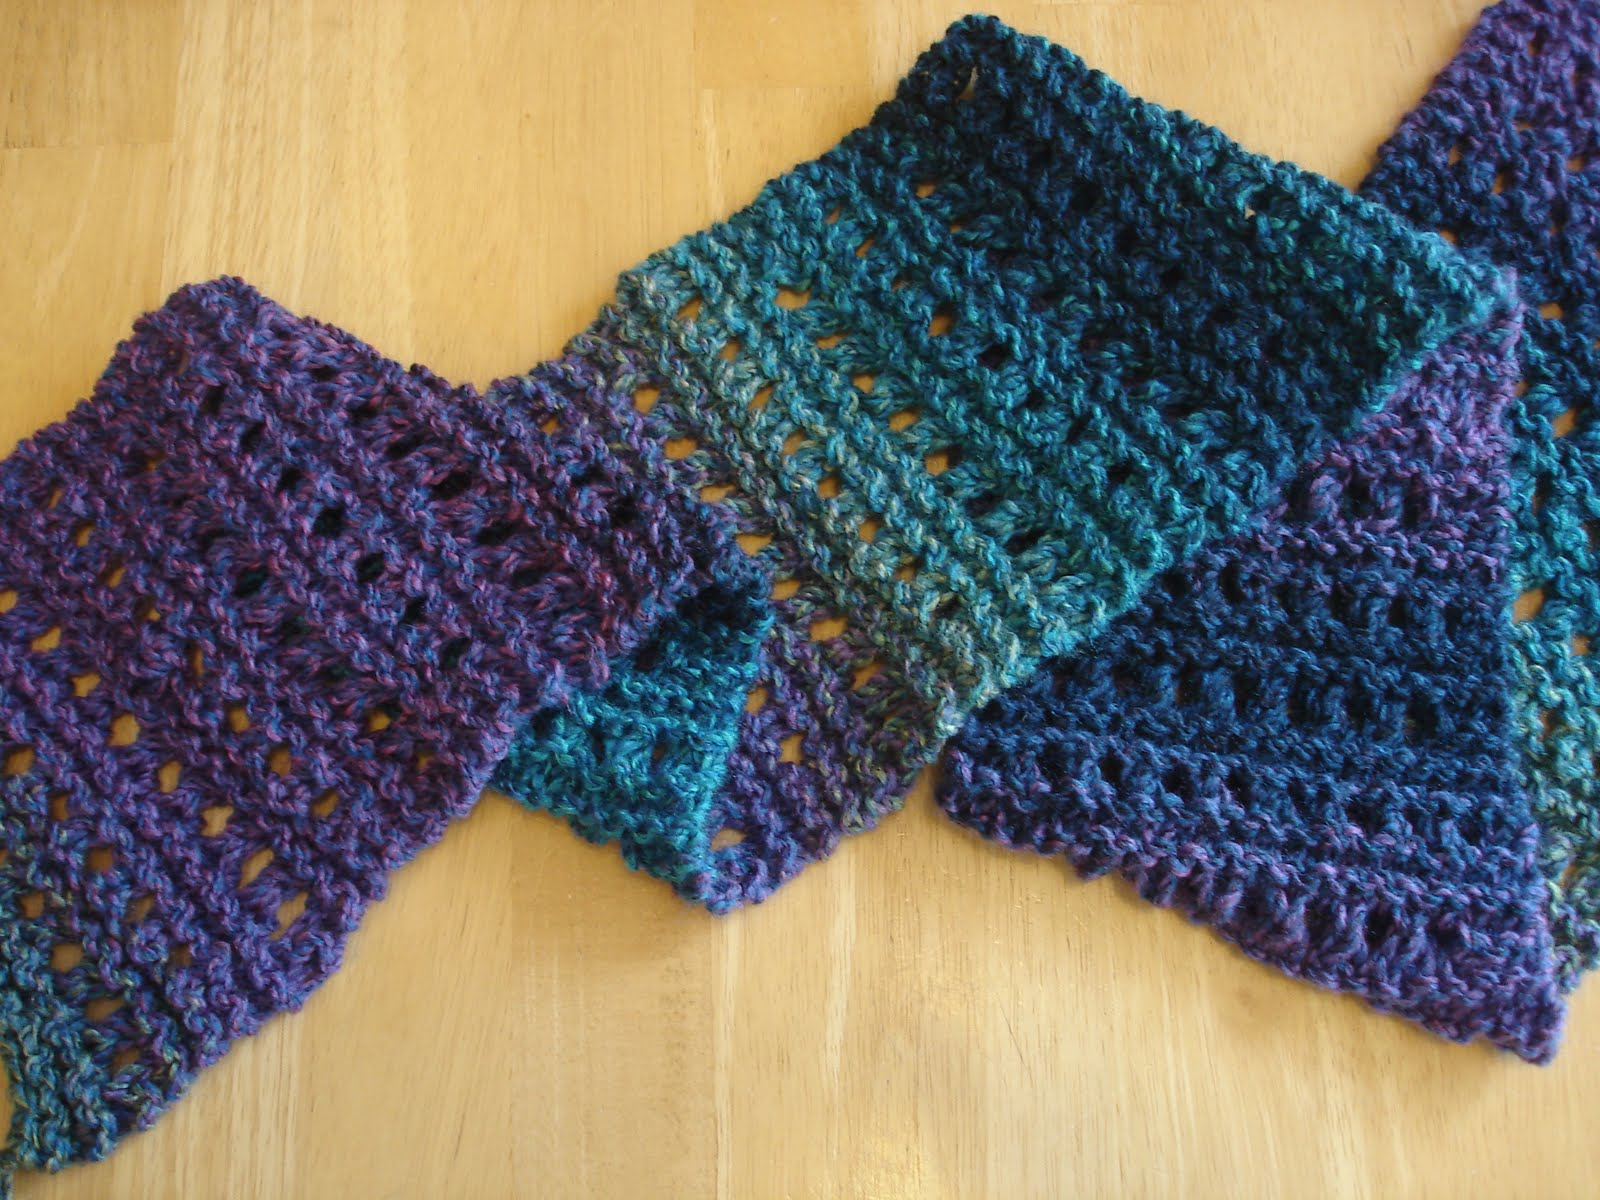 Knitted Scarf Pattern With Pointed Ends : Fiber Flux: Free Knitting Pattern: Tweedy Eyelet Scarf!